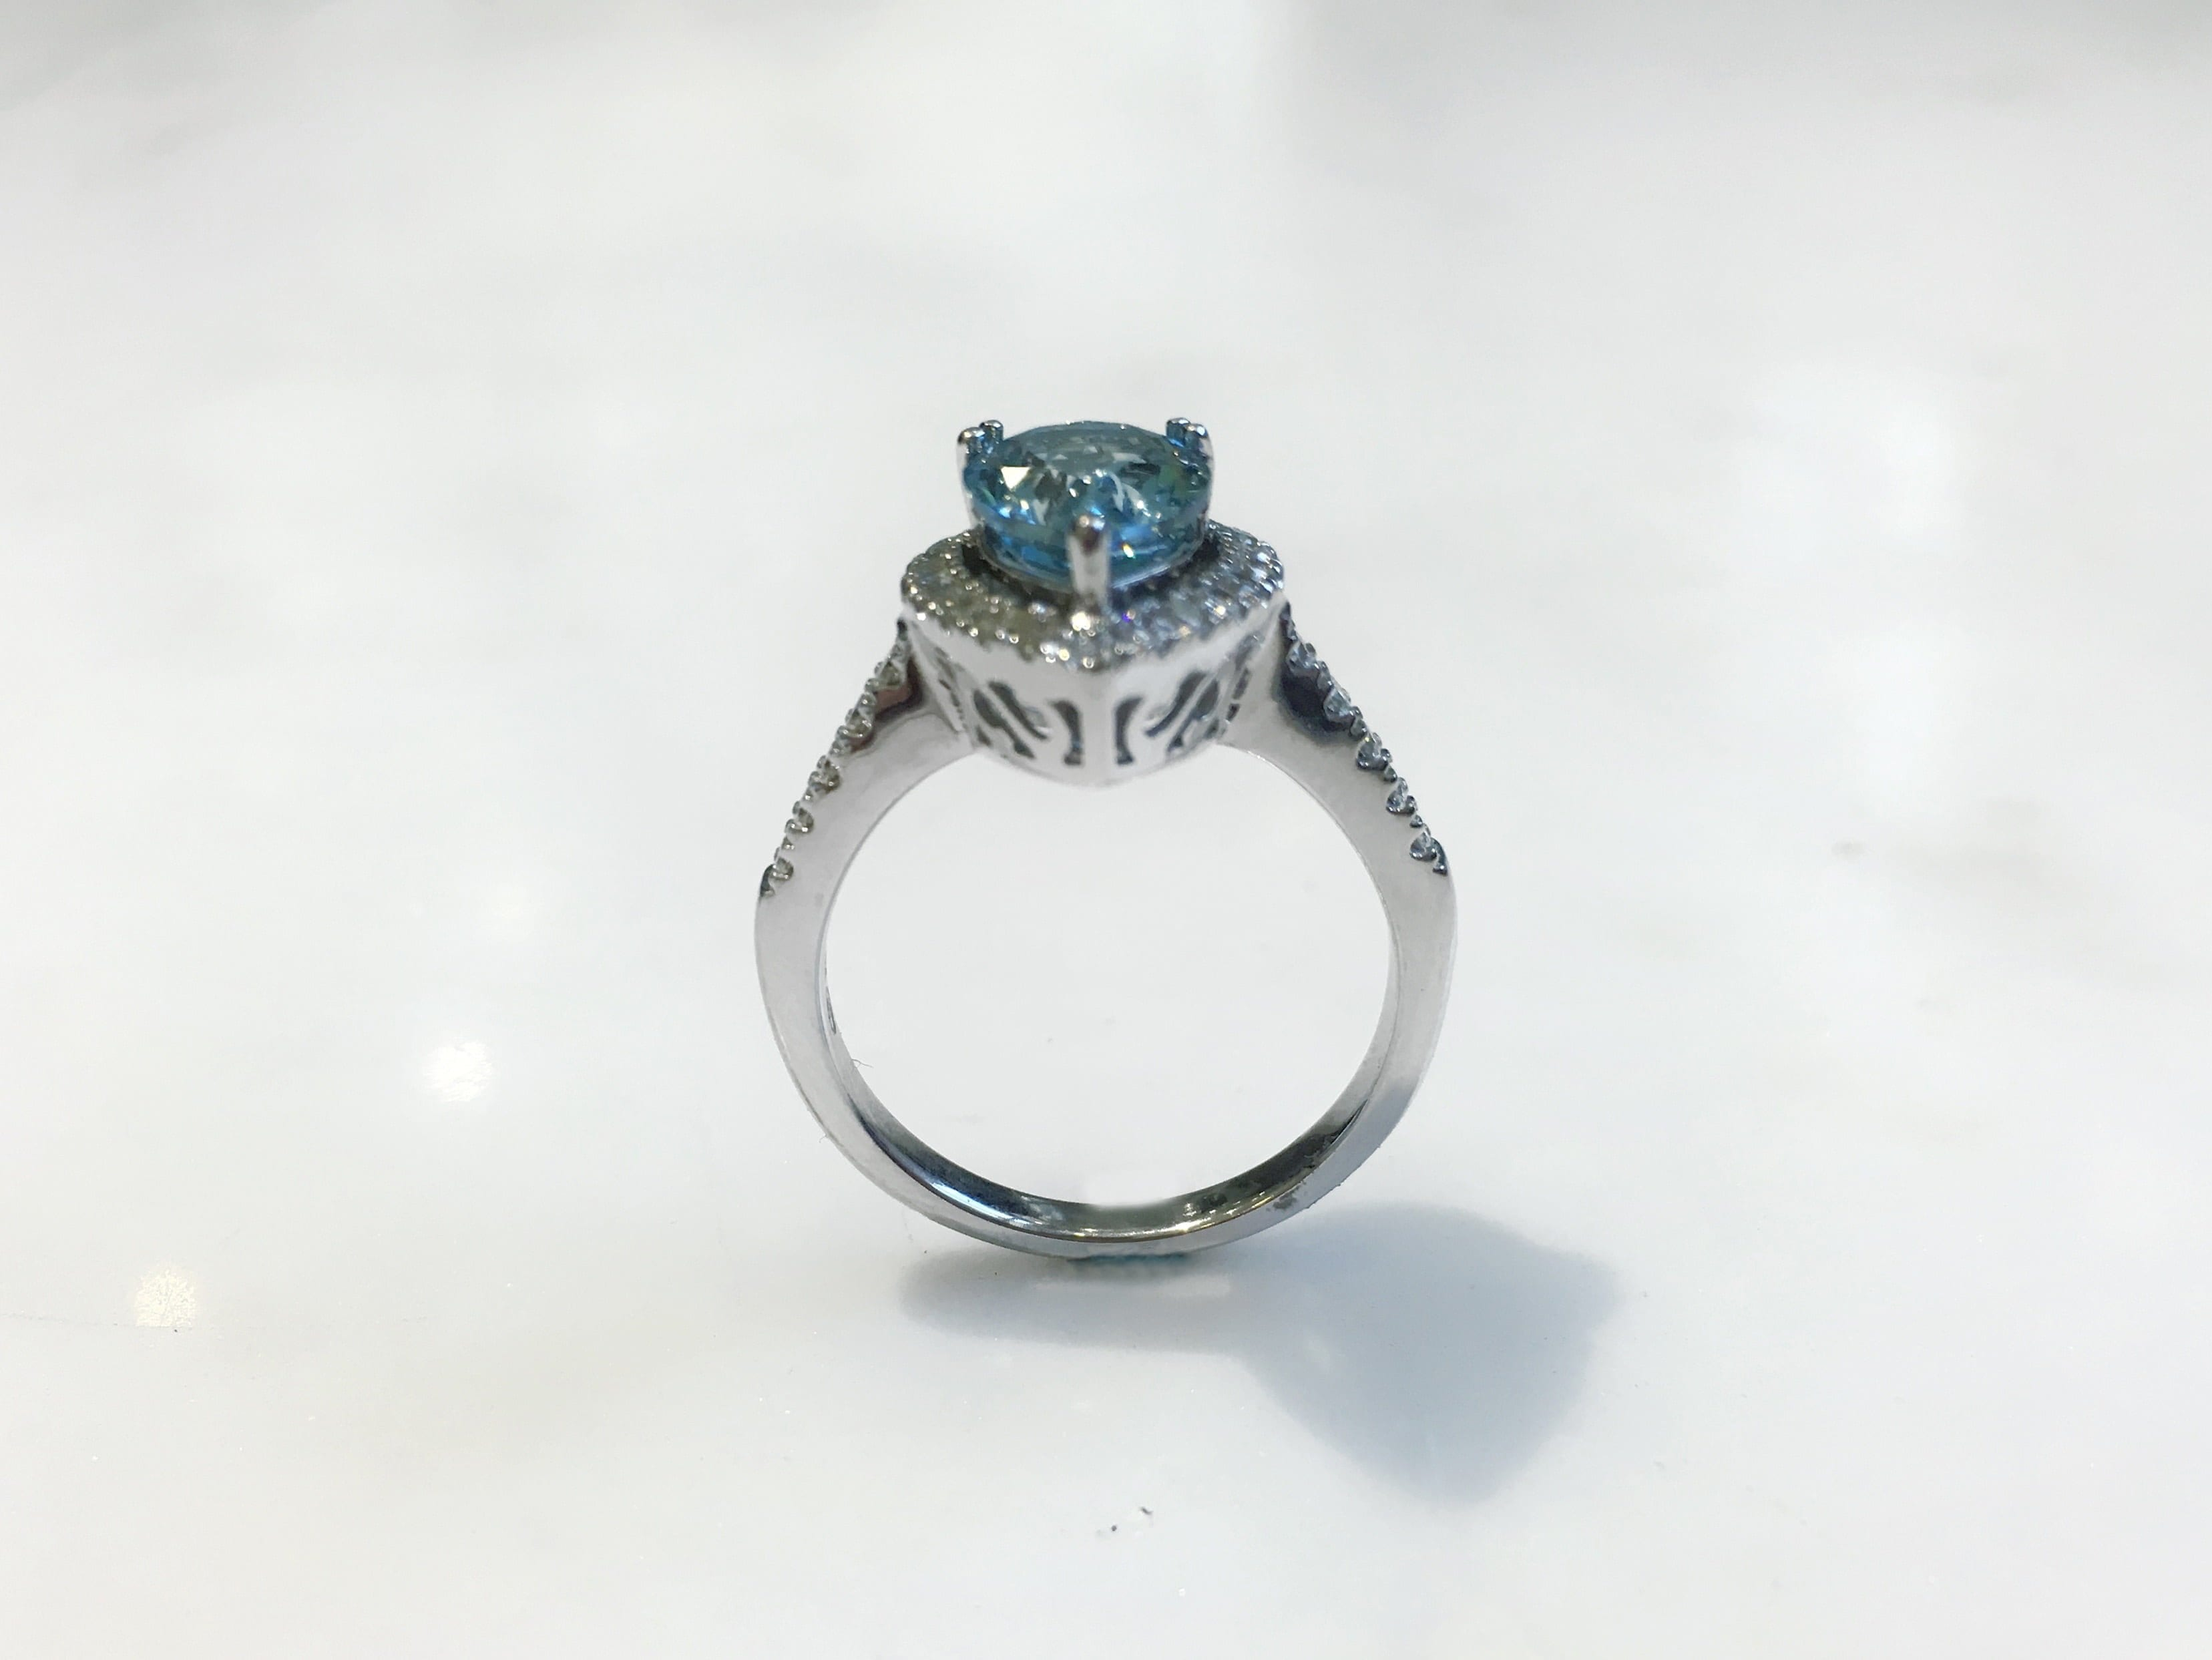 thumbnail artisan jewellery ring original online store powered aquamarine raw jewelry sundara products